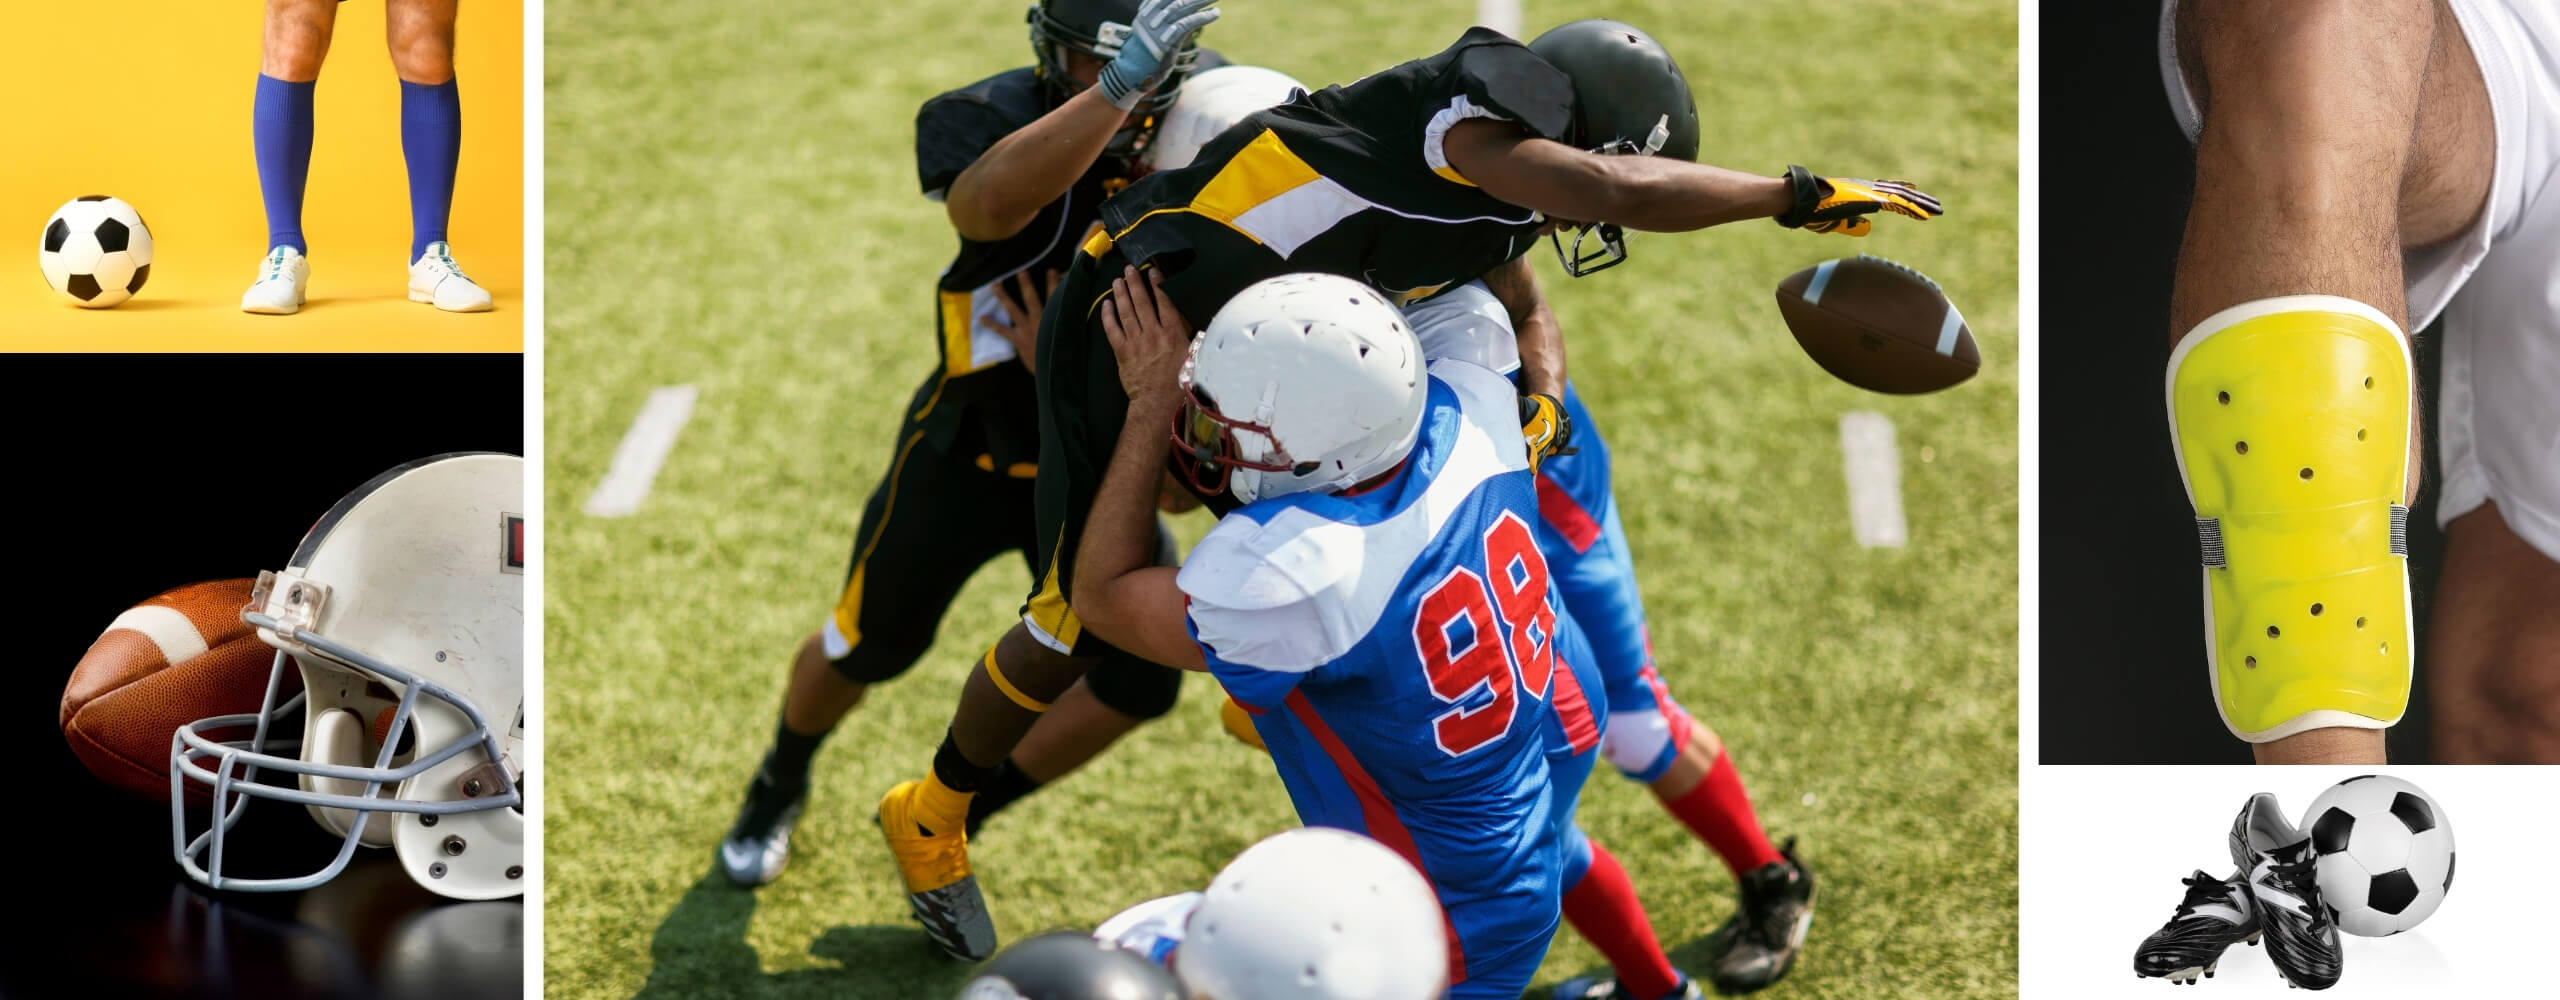 sports-protective-gear